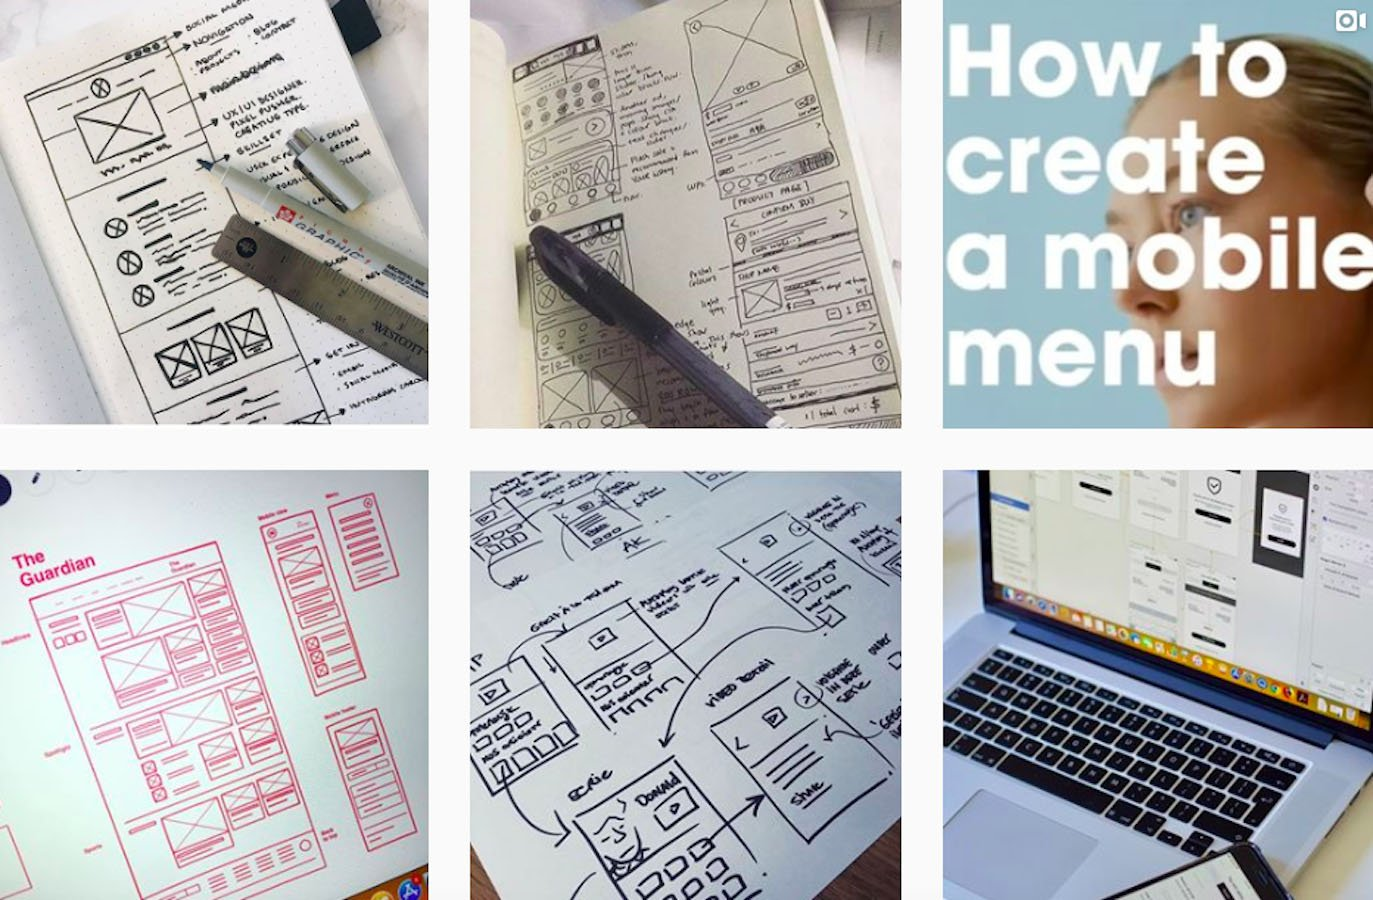 Web Design Inspiration: 110+ Accounts On Instagram and 10+ Best UX & Web Design Books in 2020 - humble ux